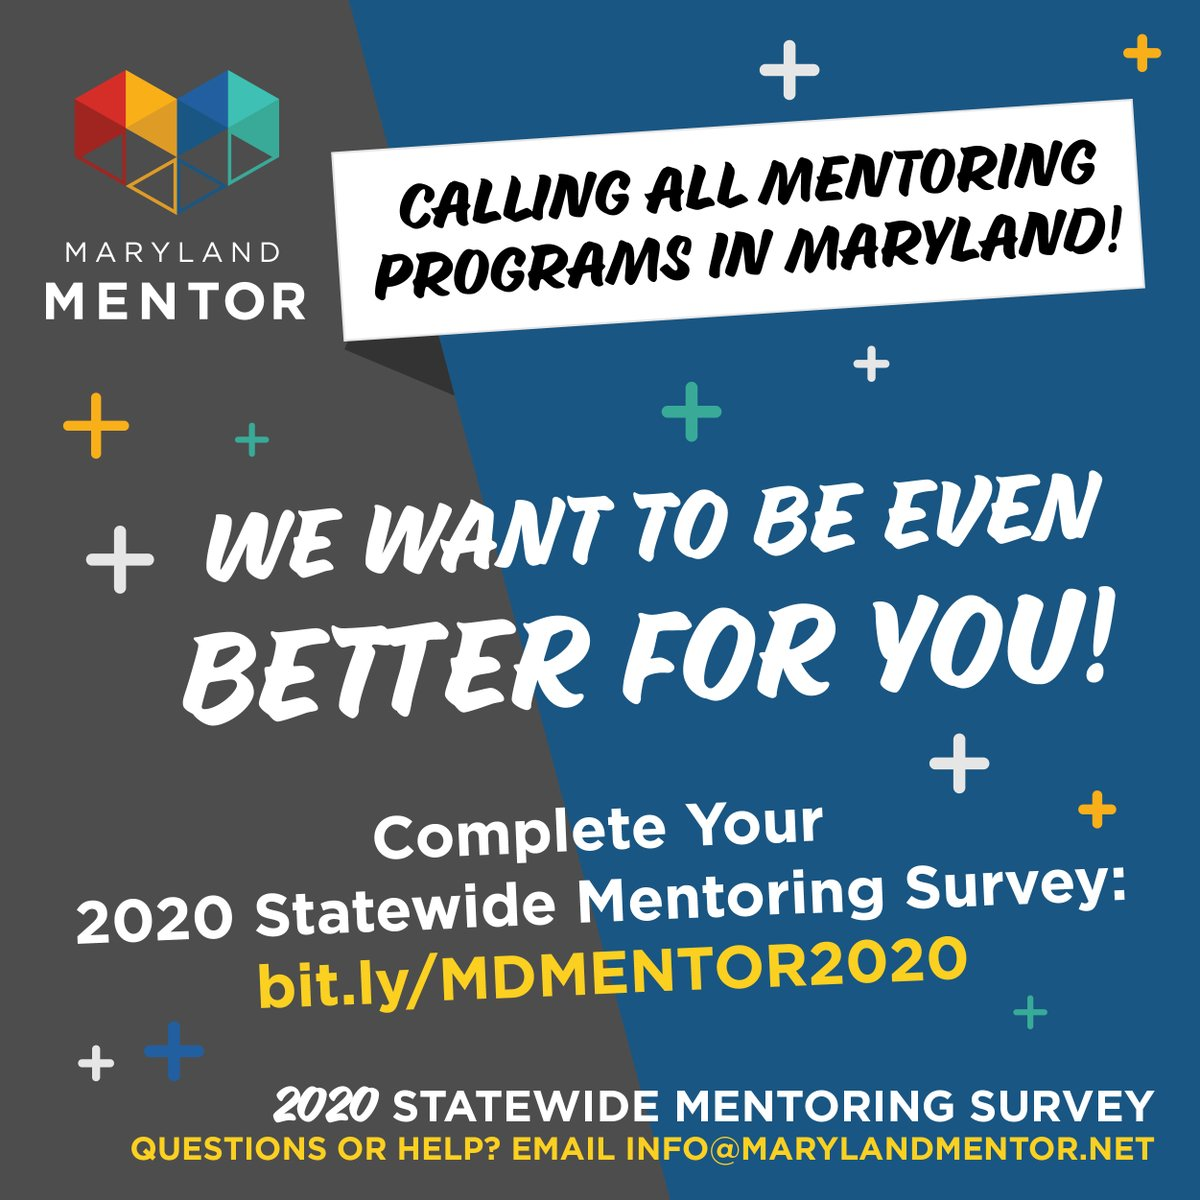 Are you a Mentoring Program in Maryland? Take our survey! bit.ly/MDMENTOR2020